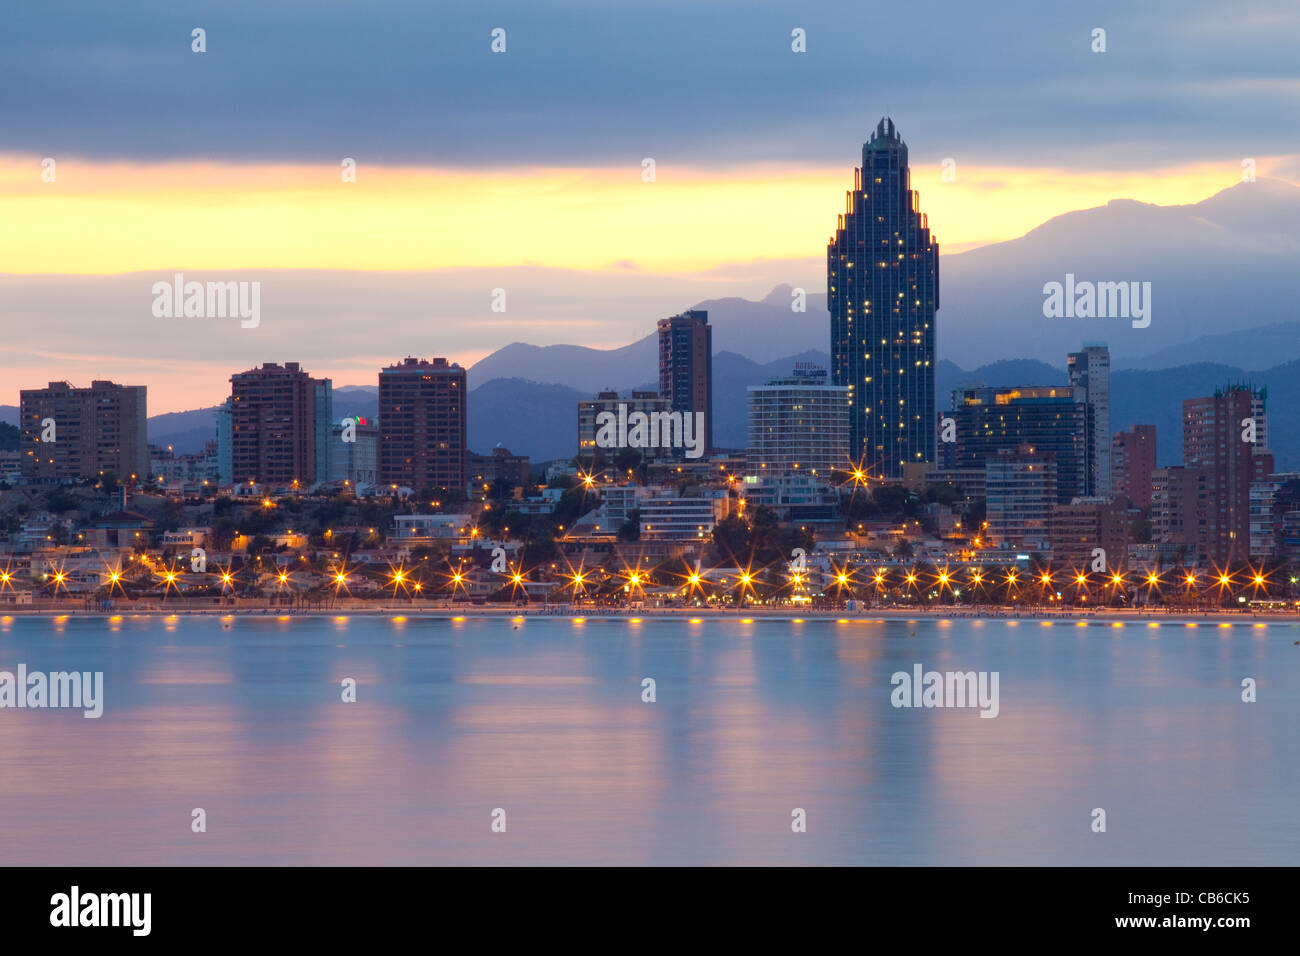 Gran Hotel Bali Benidorm High Resolution Stock Photography And Images Alamy